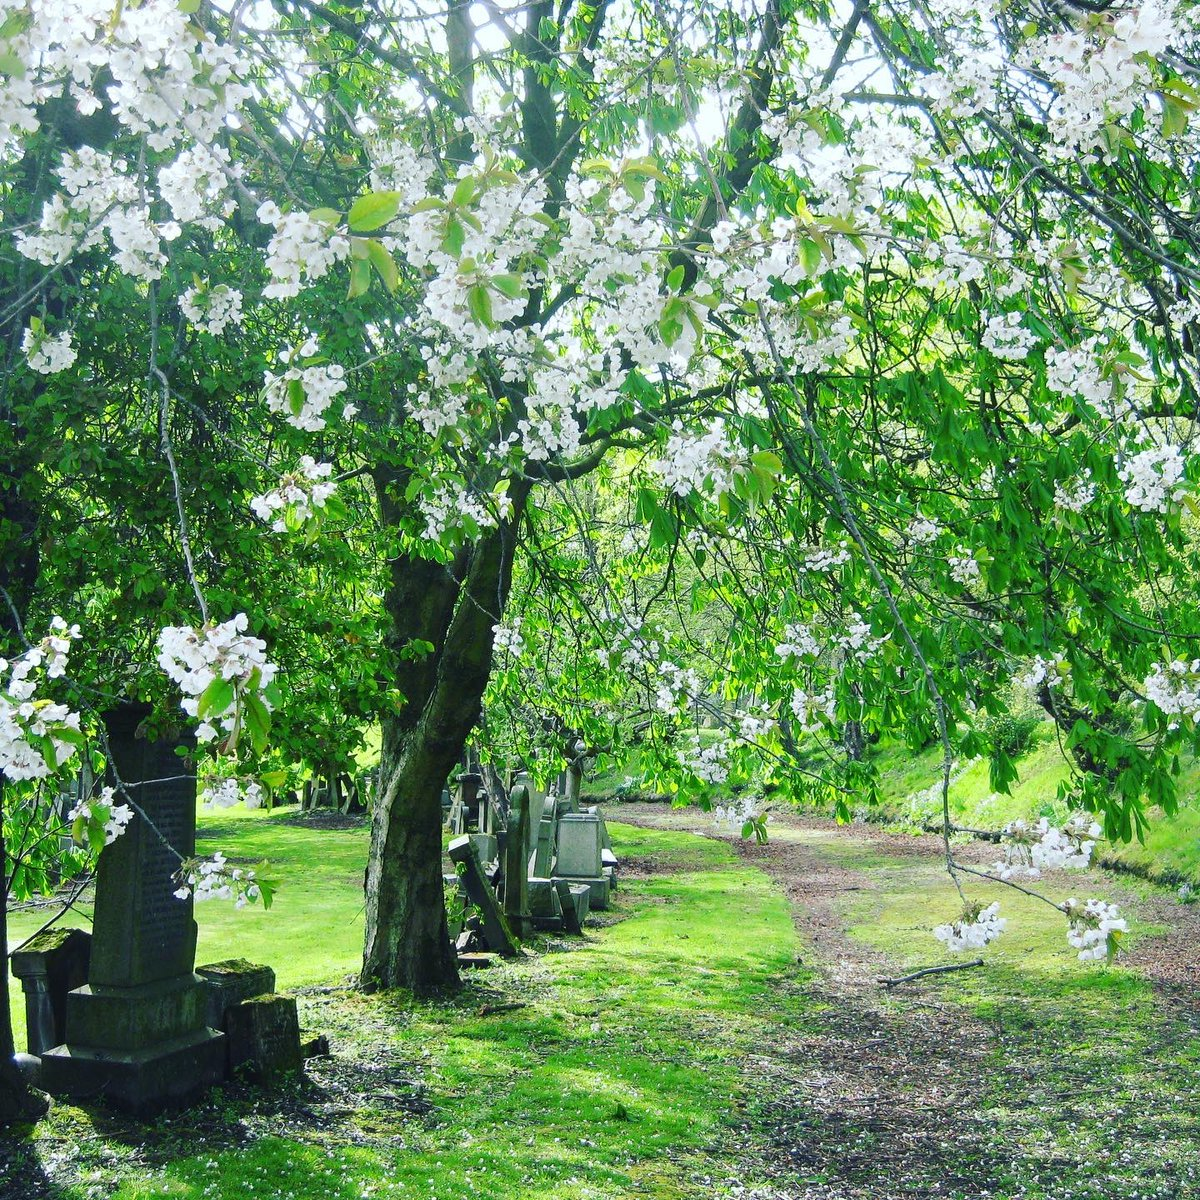 Who said #cemeteries can't be beautiful?  A few shots of my favorite place to stroll through in #Glasgow: the #Necropolis.  #VisitScotland #DiscoverScotland #Scotland #ScotlandIsNow #LoveScotland #PeopleMakeGlasgow #ScotSpirit https://t.co/F63DlijmWQ